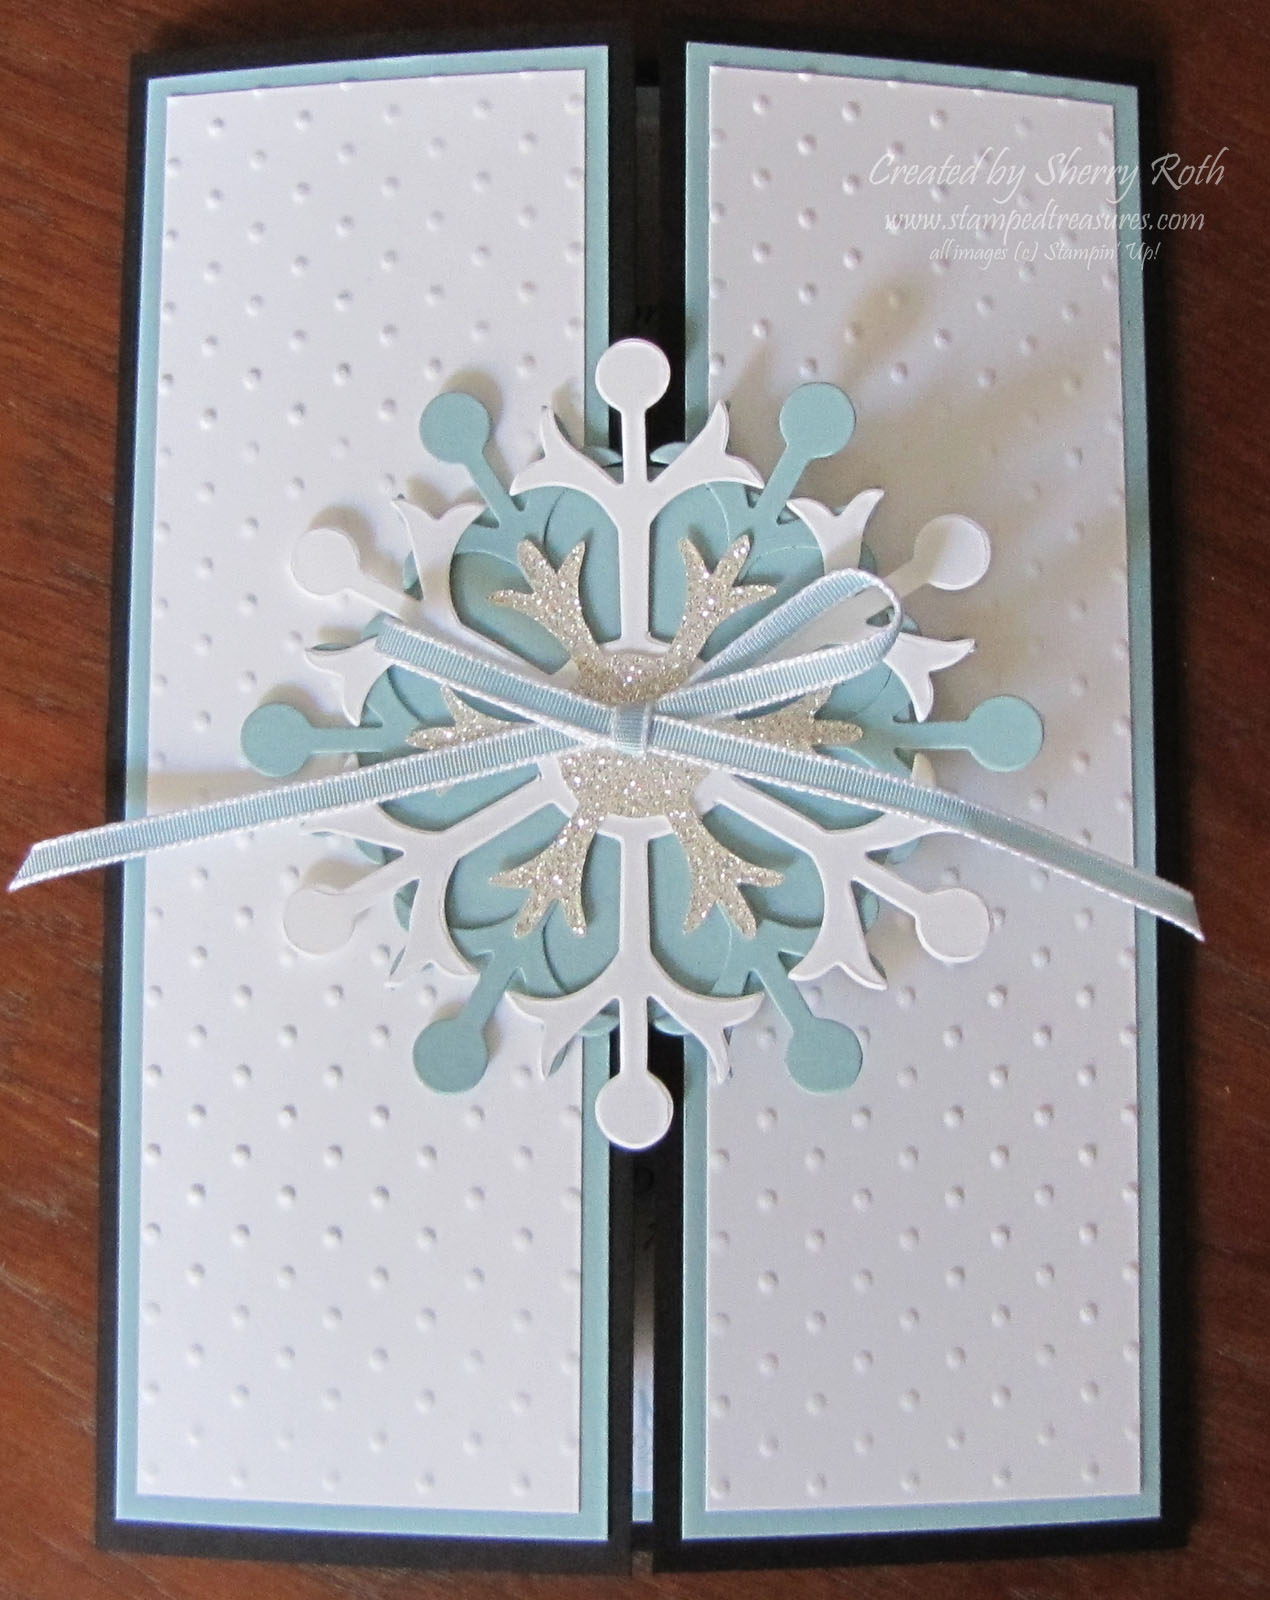 Sherrys Stamped Treasures Winter Wedding Invitations